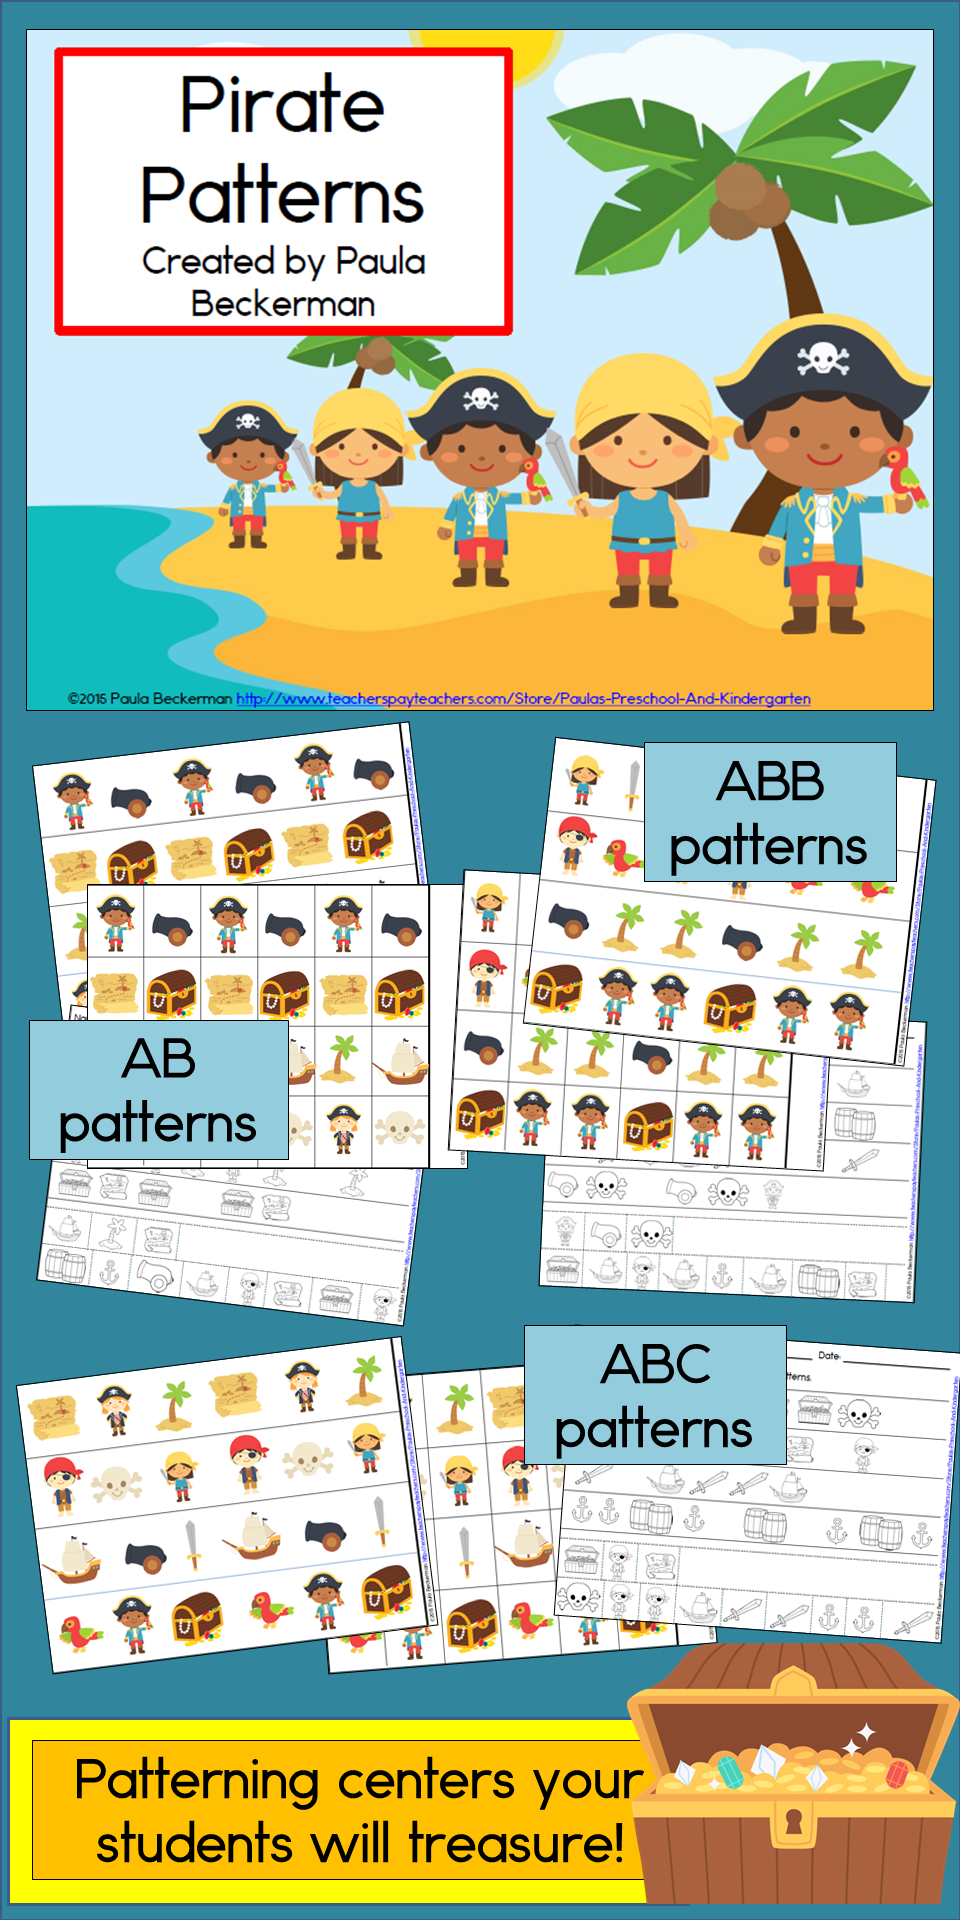 Pirate Patterns Math Center with AB, ABC, AAB & ABB Patterns ...